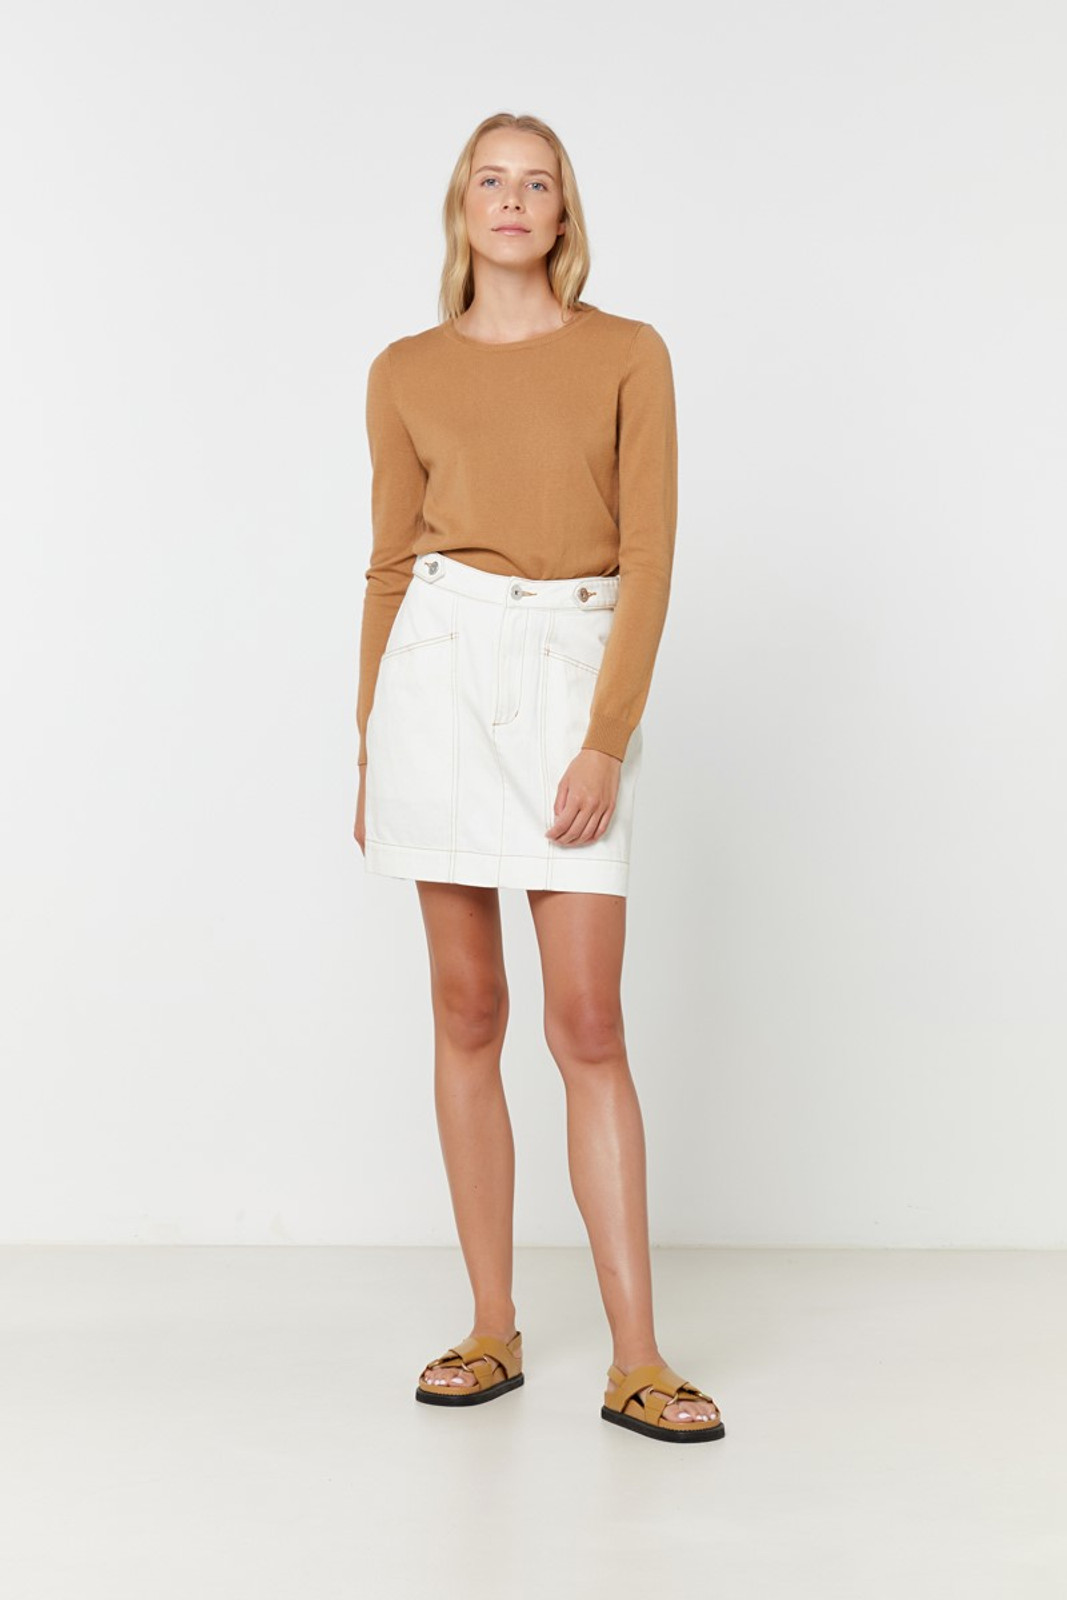 Elka Collective Gale Knit Neutrals  7